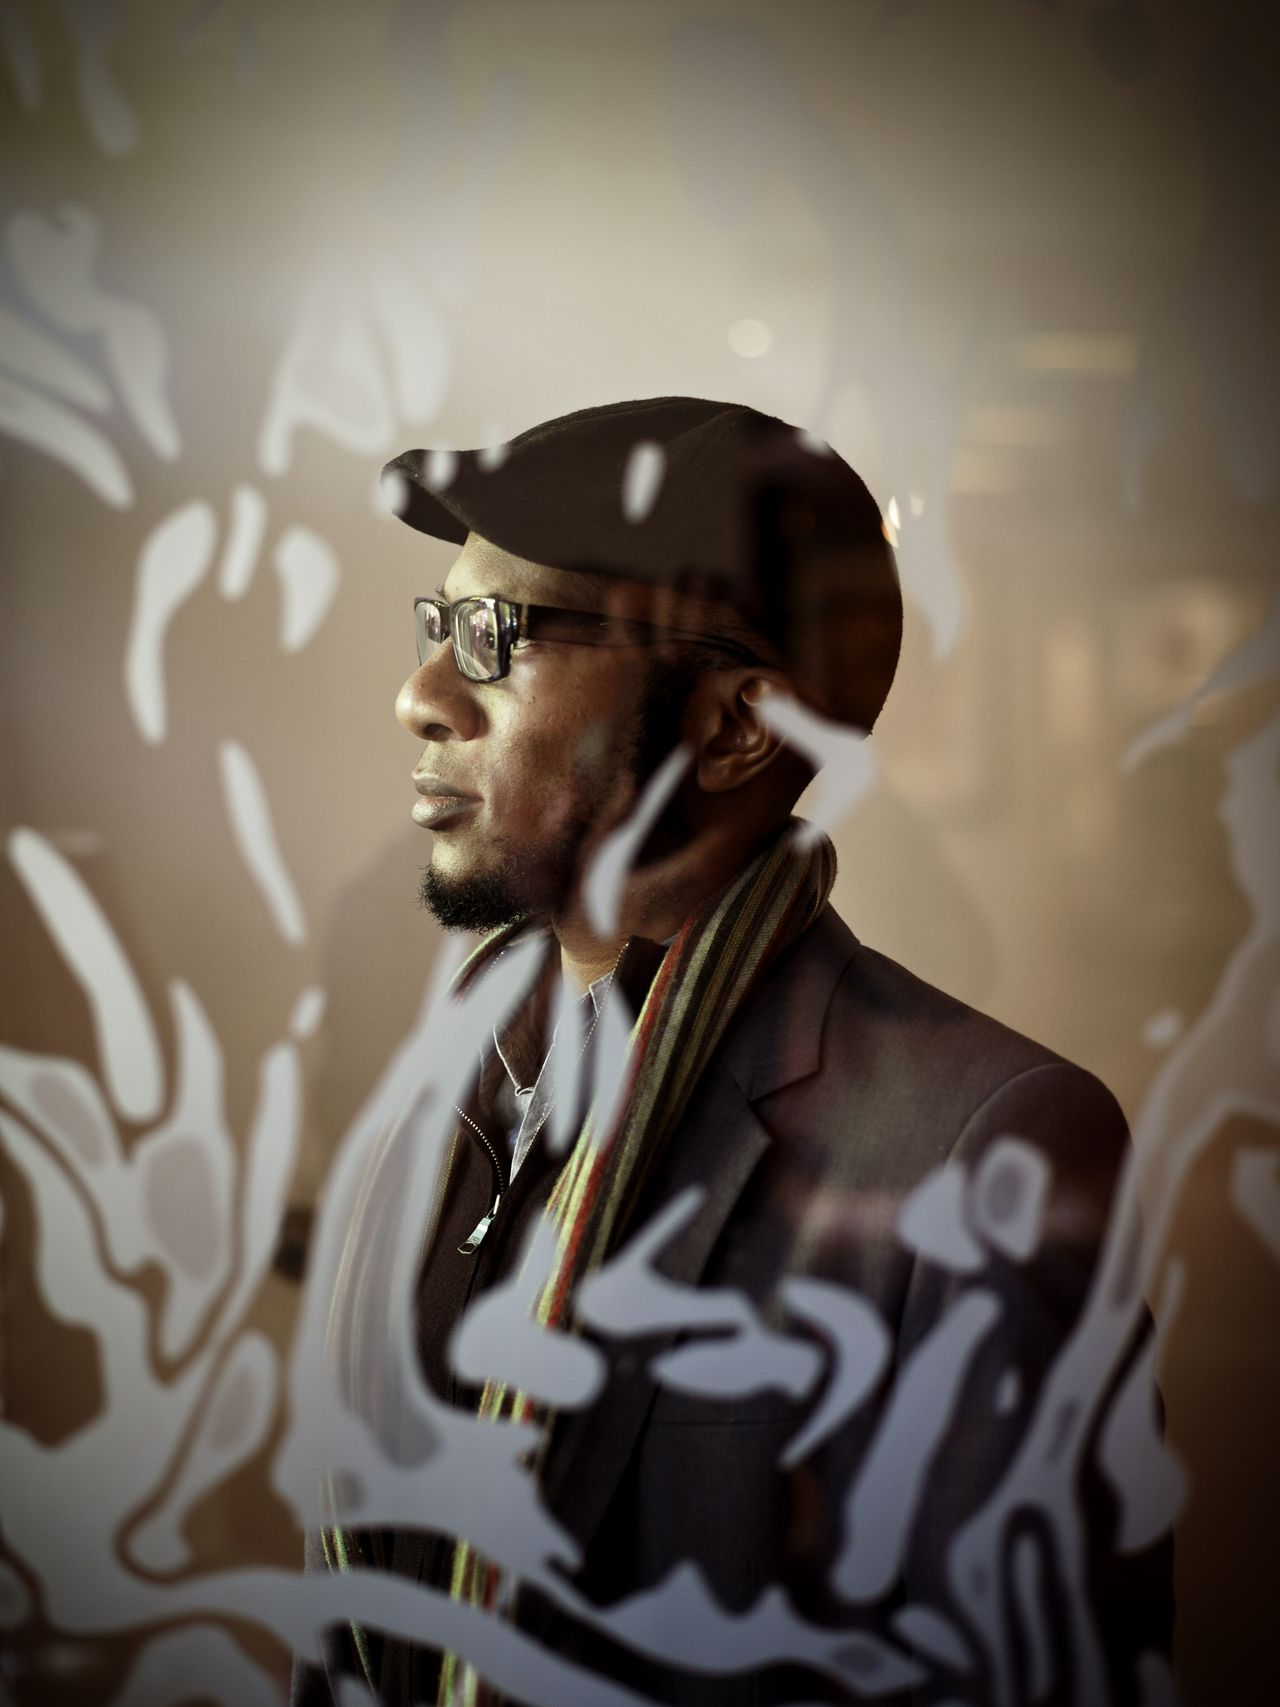 Nederland, Amsterdam, 30-05-2012 Teju Cole (born June 27, 1975) is a Nigerian-American writer, photographer, and art historian PHOTO AND COPYRIGHT ROGER CREMERS